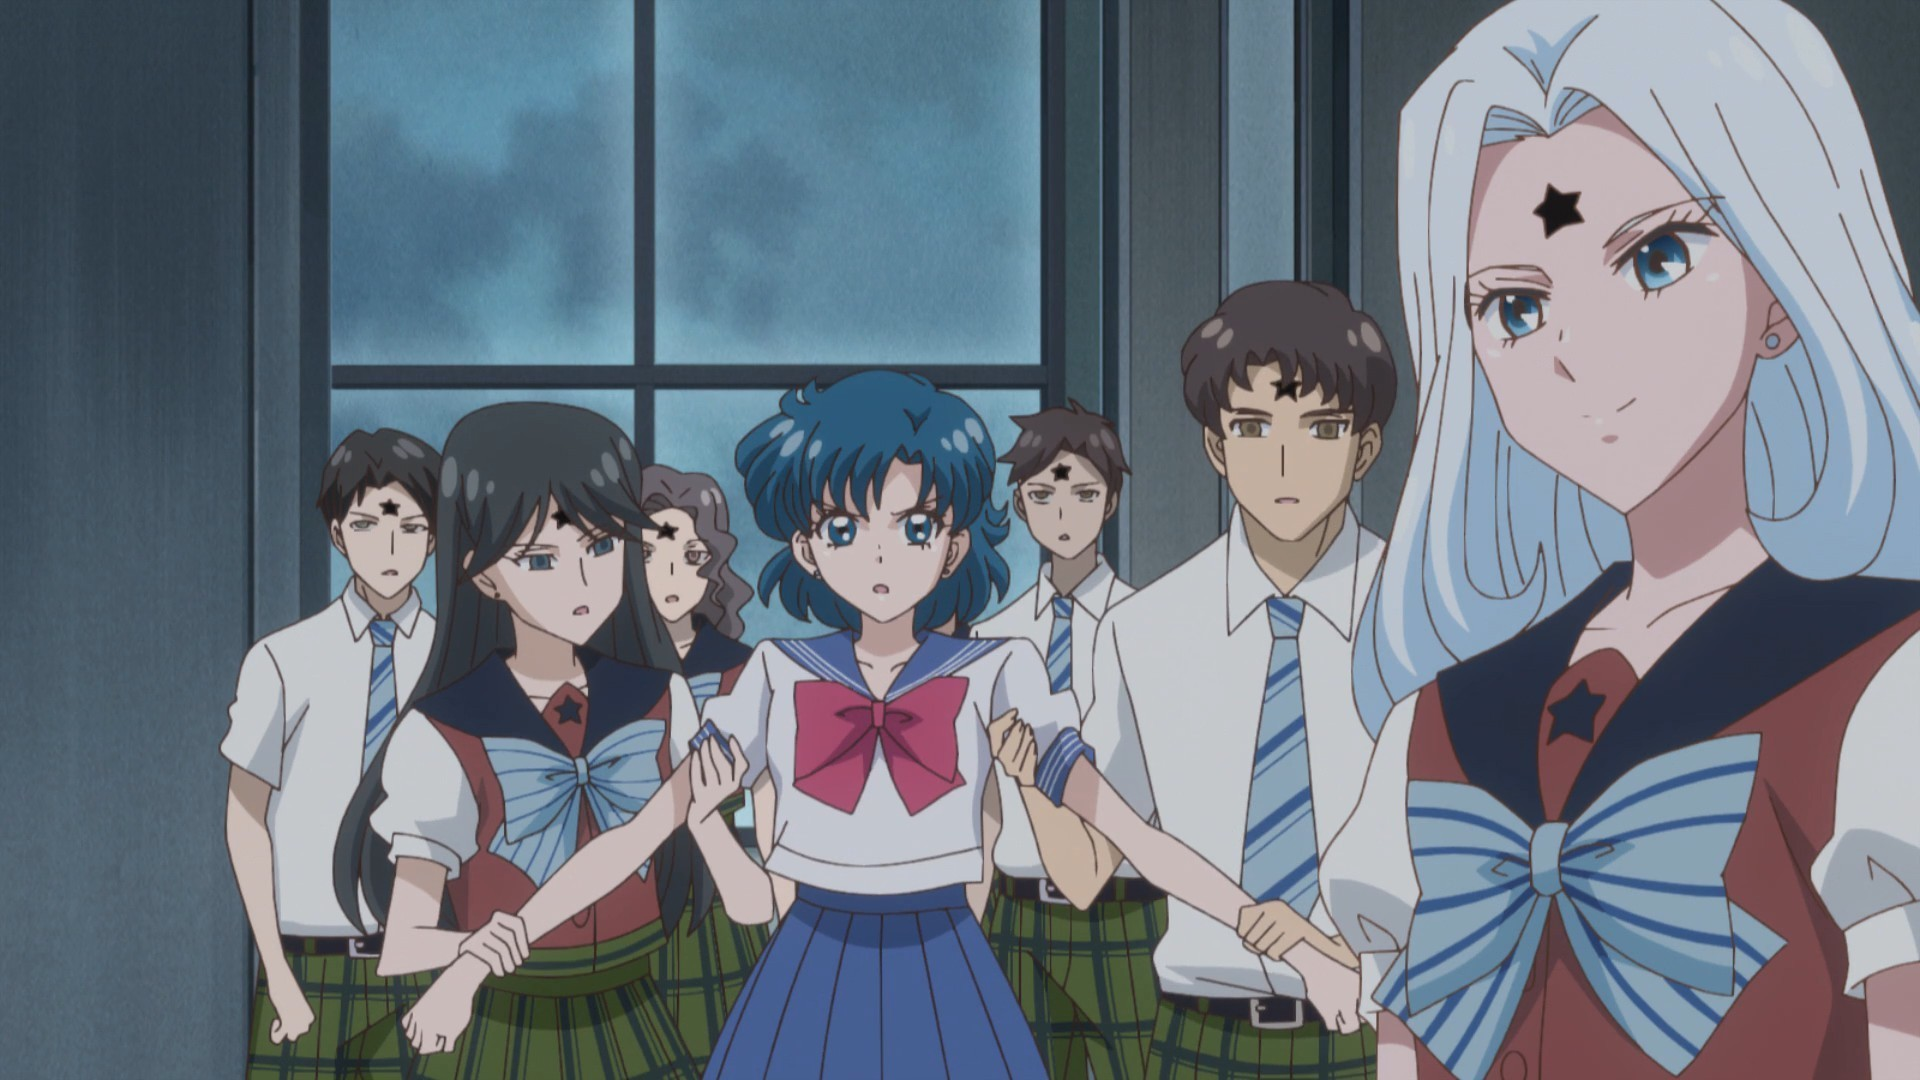 Mugen Gakuen uniform (from Crystal, but it's the same in the original anime)